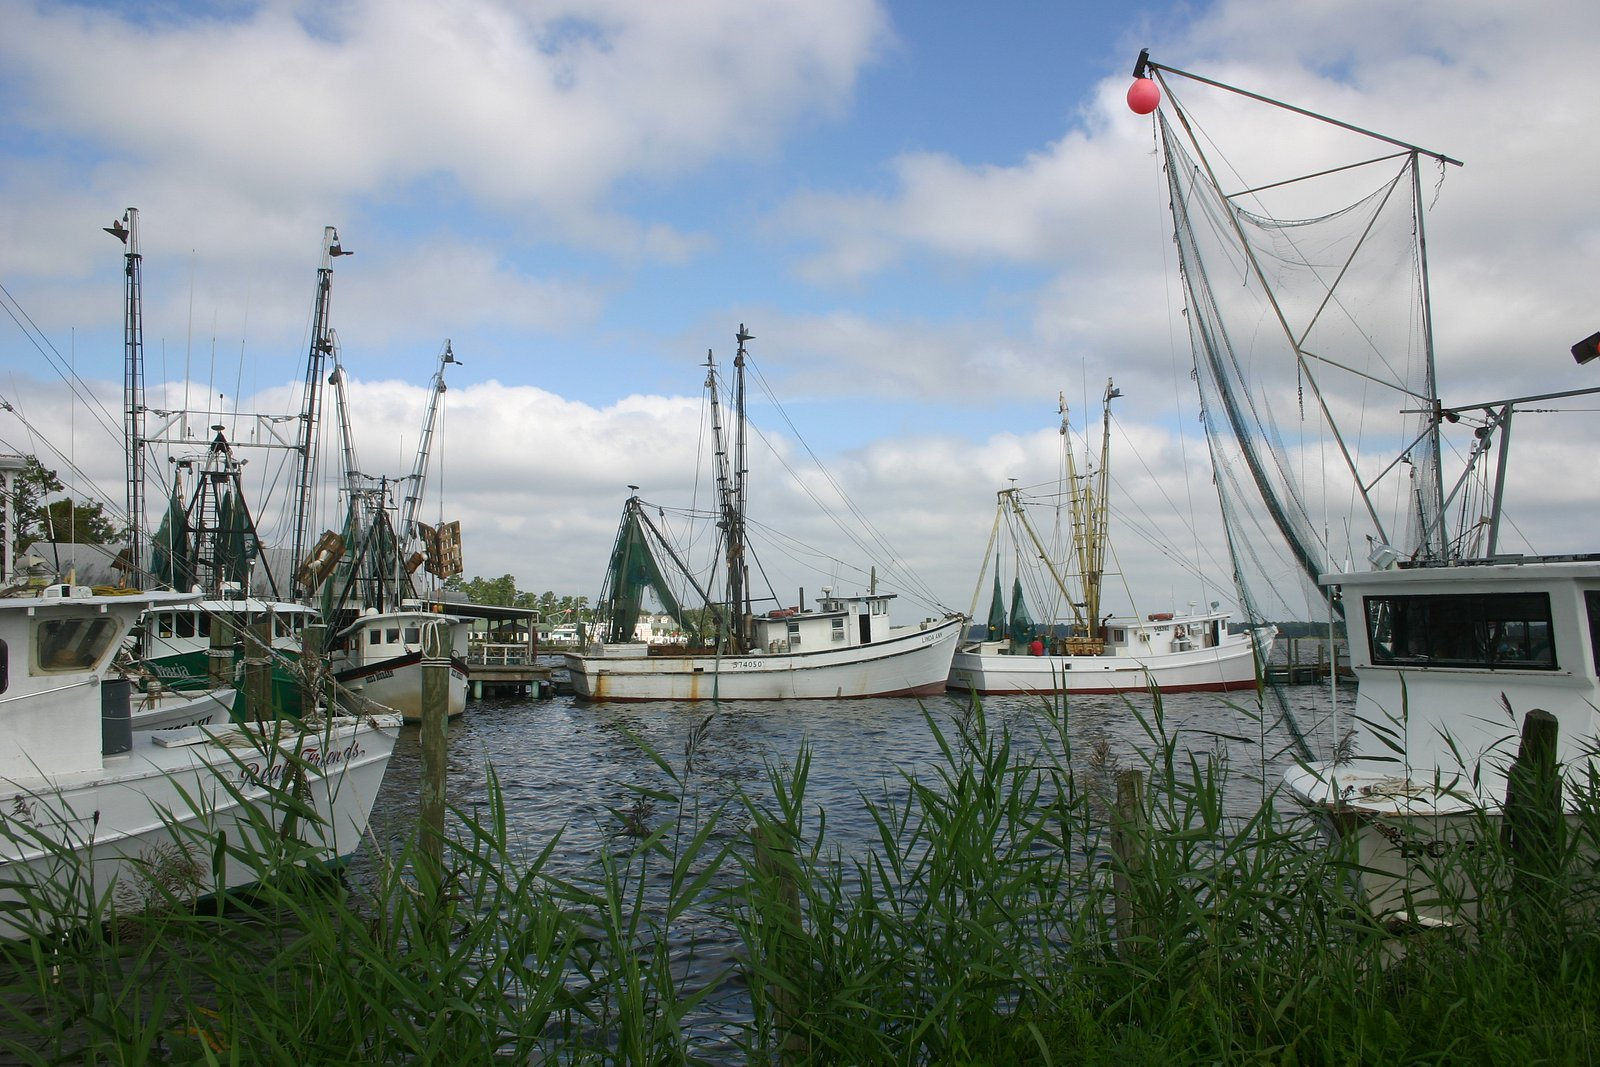 Shrimp boats by Everett & Sons seafood.